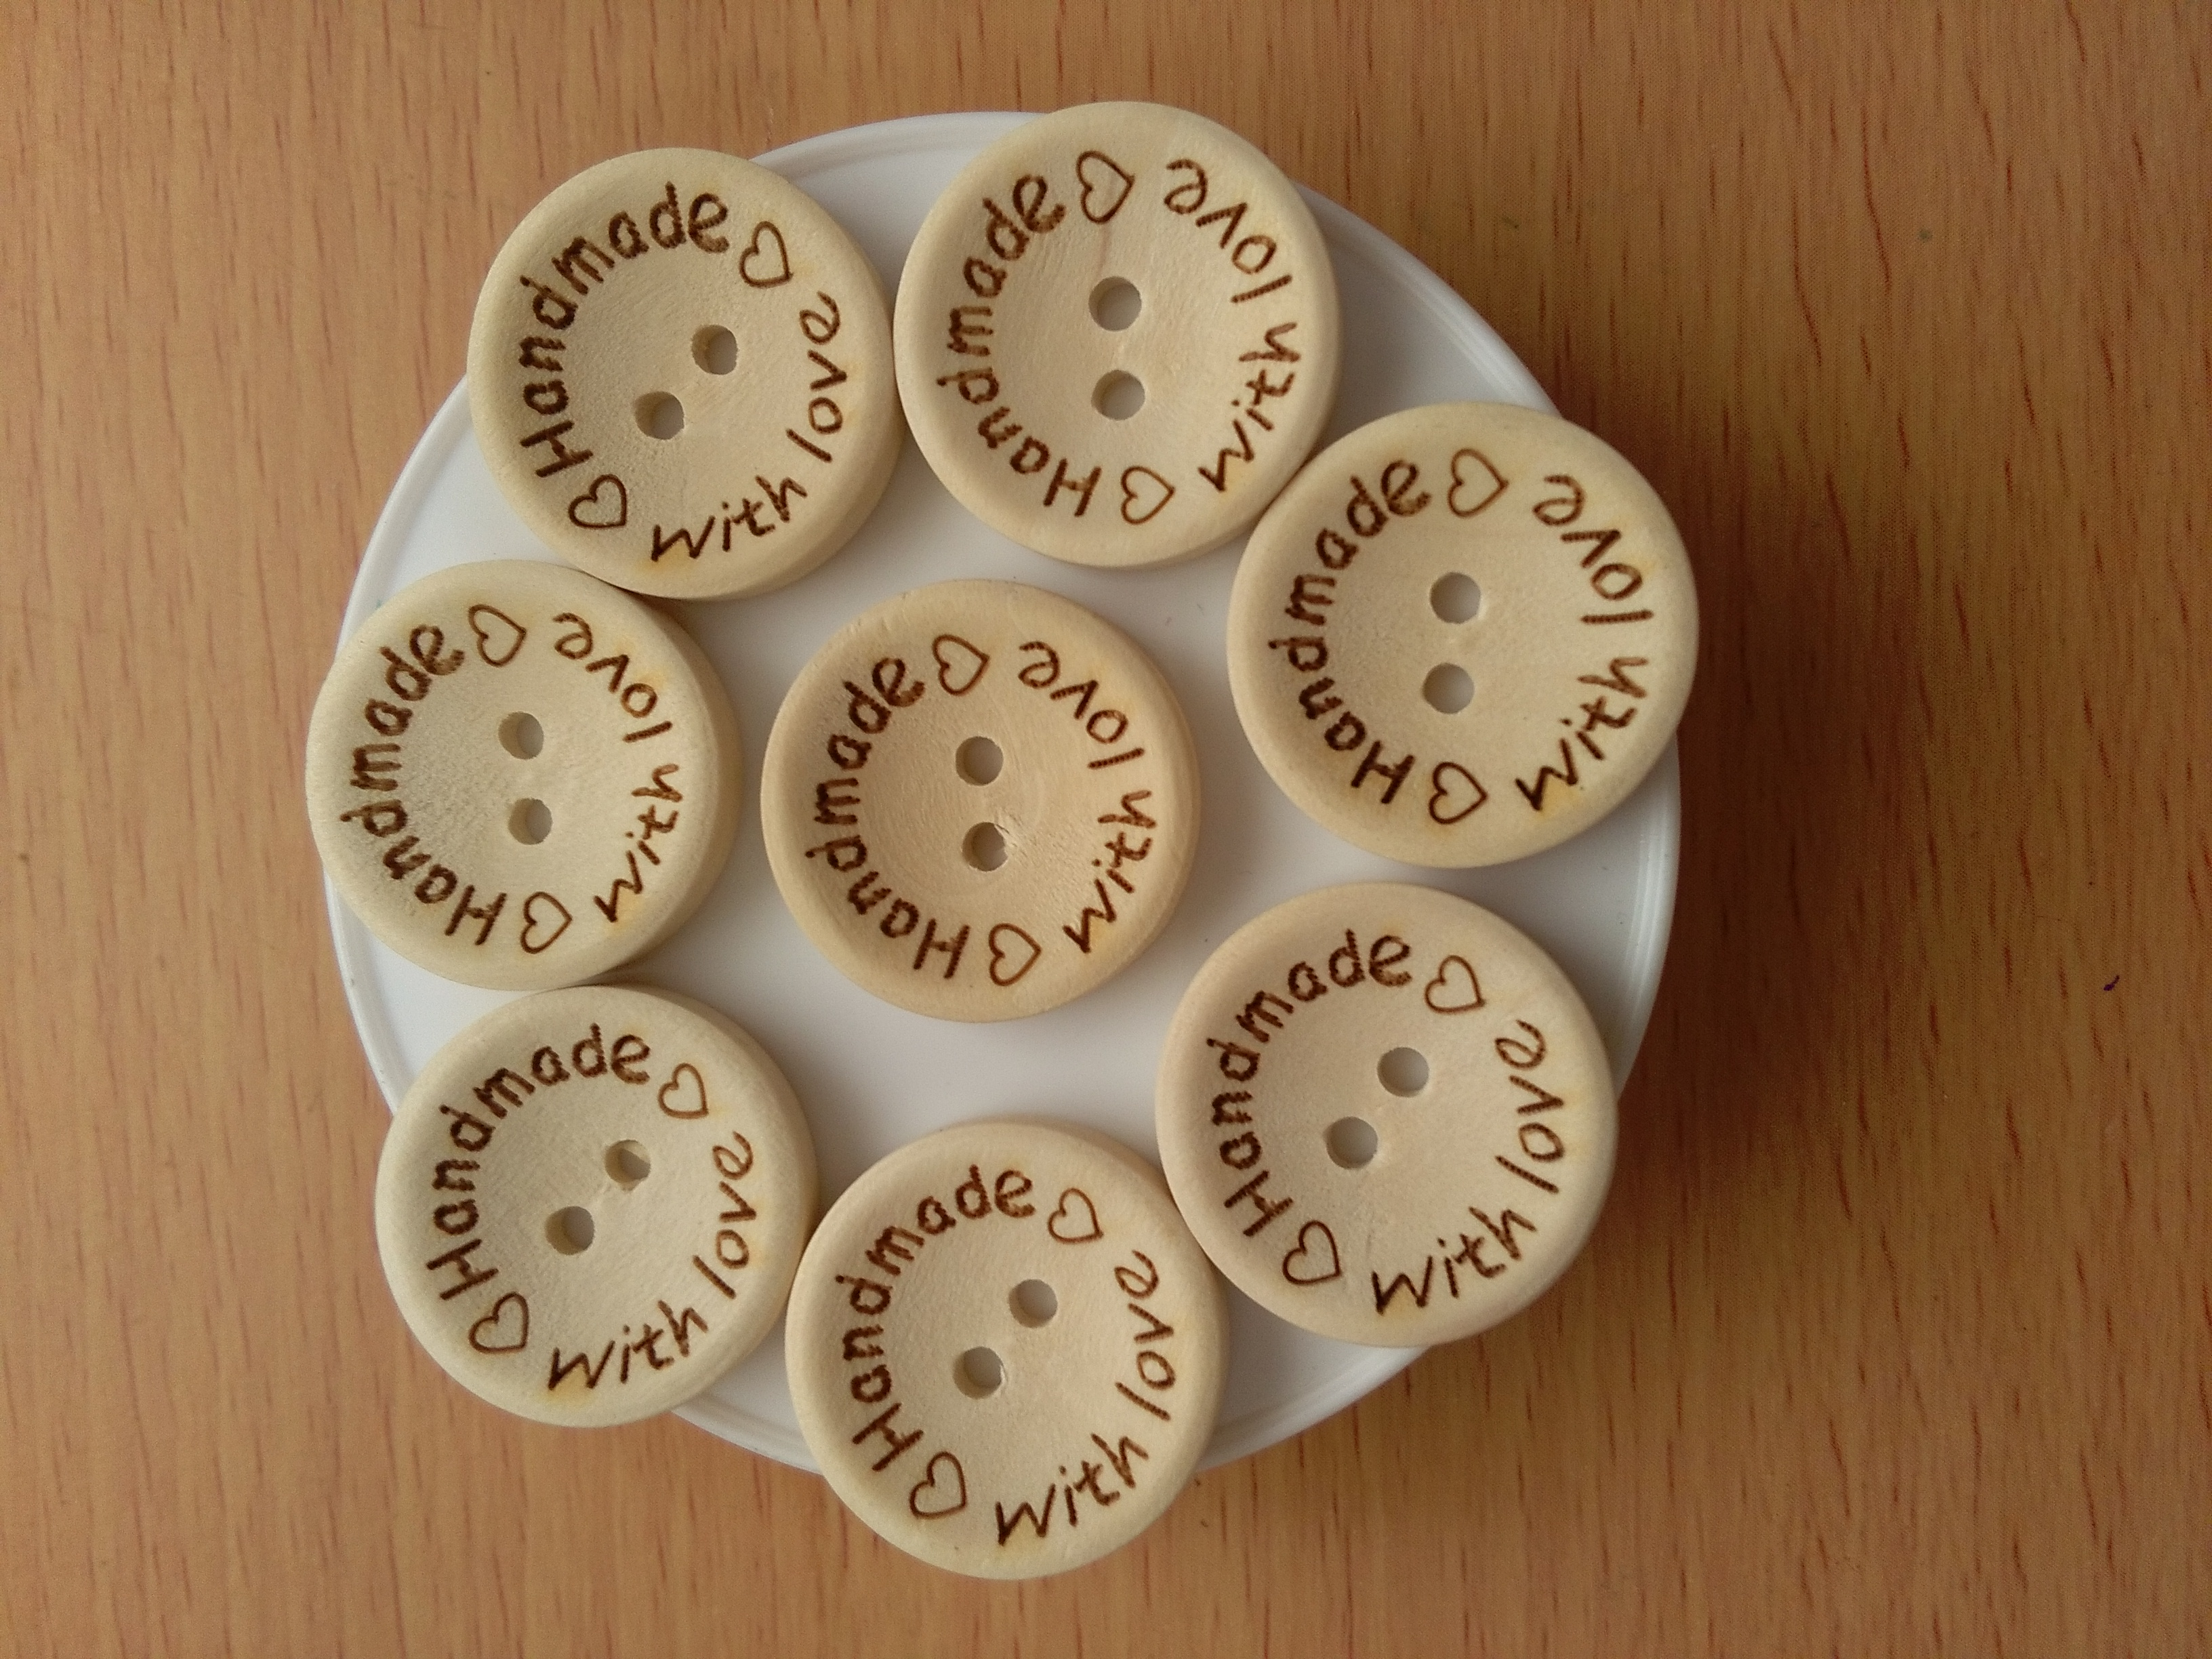 Wooden 15mm Handmade with Love Buttons